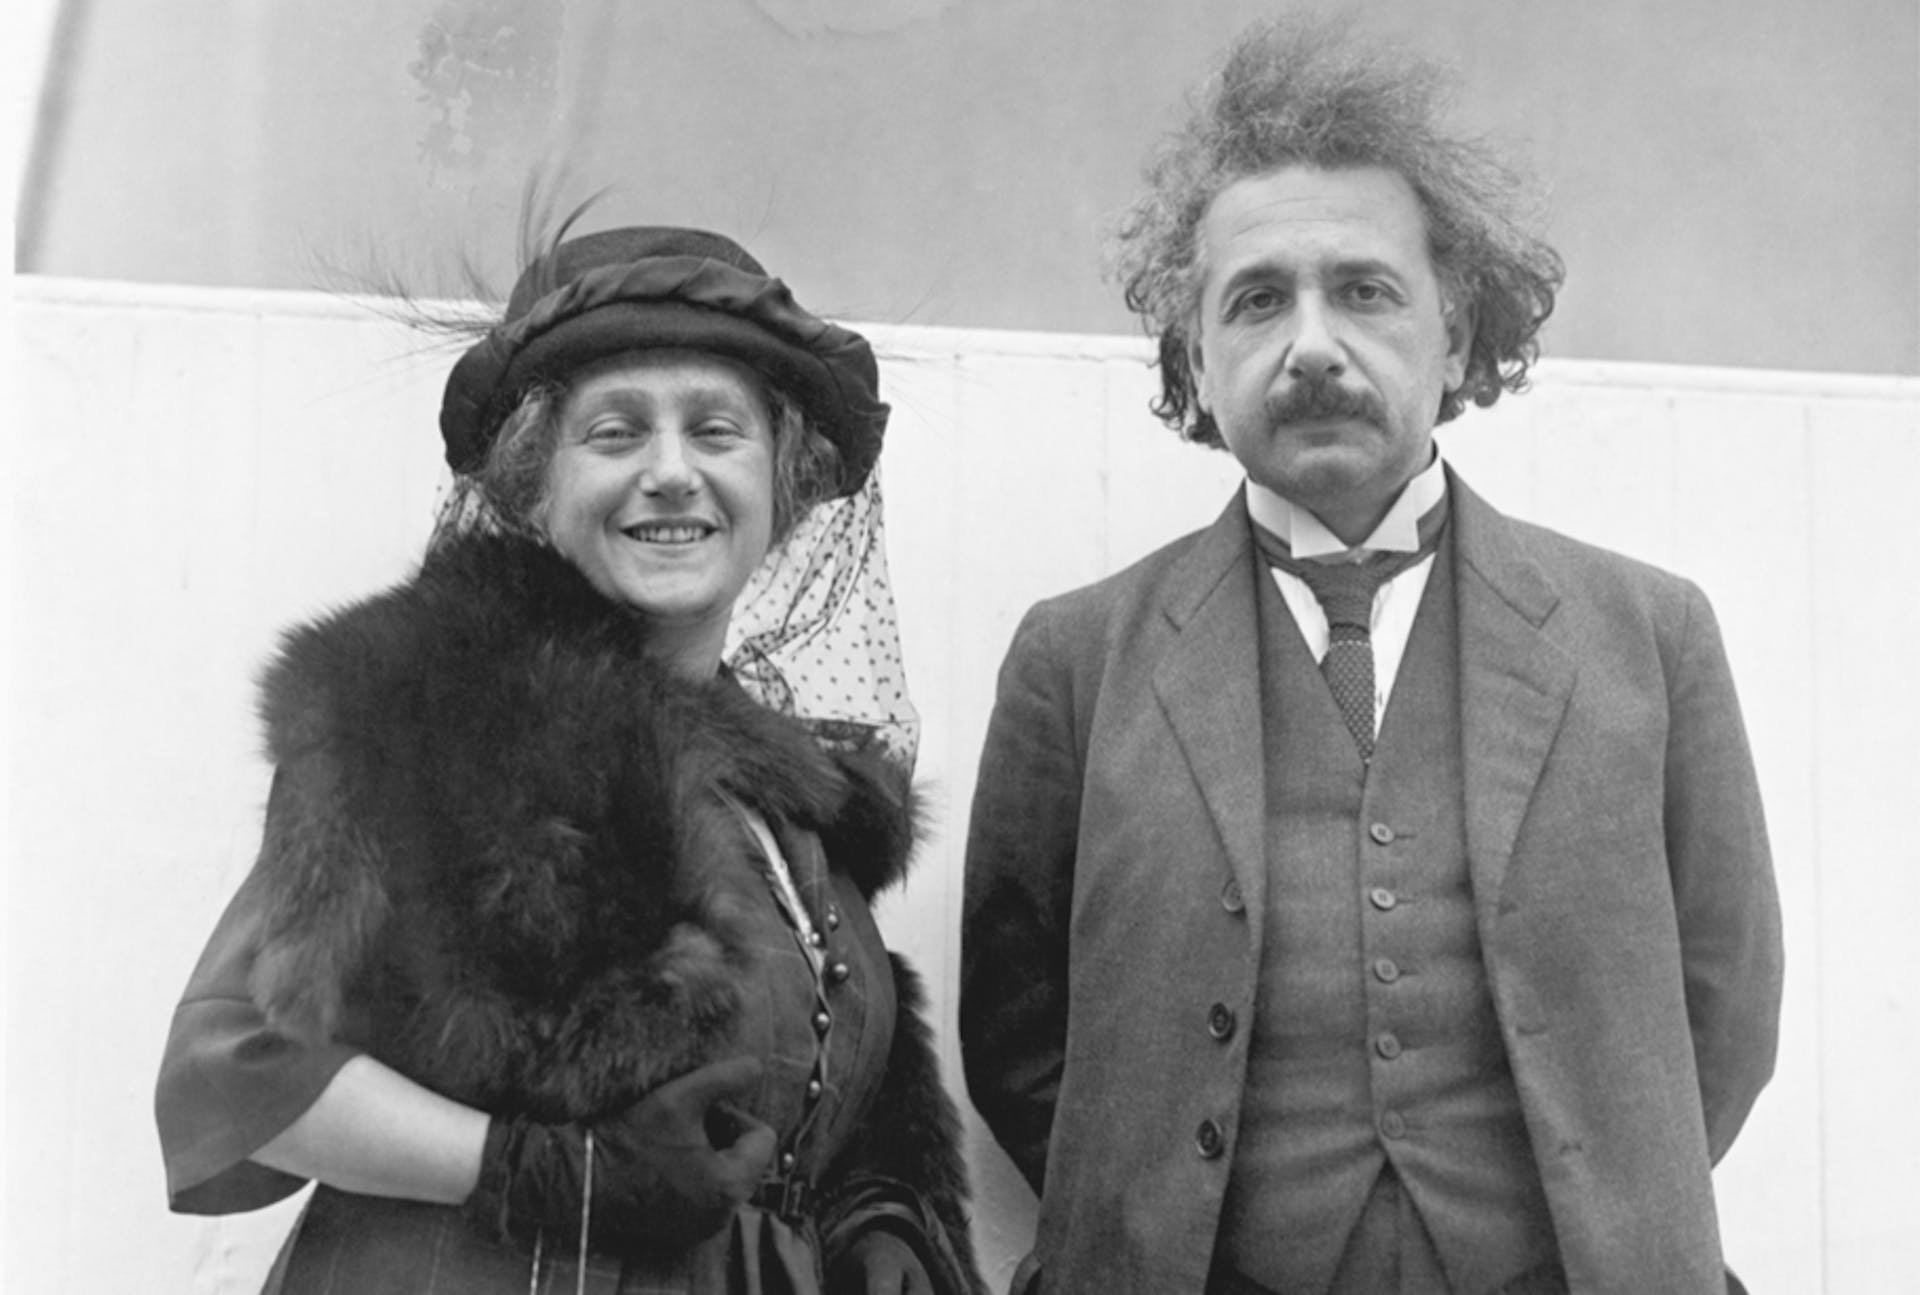 Einstein in the Holy Land (Einstein be'eretz hakodesh)